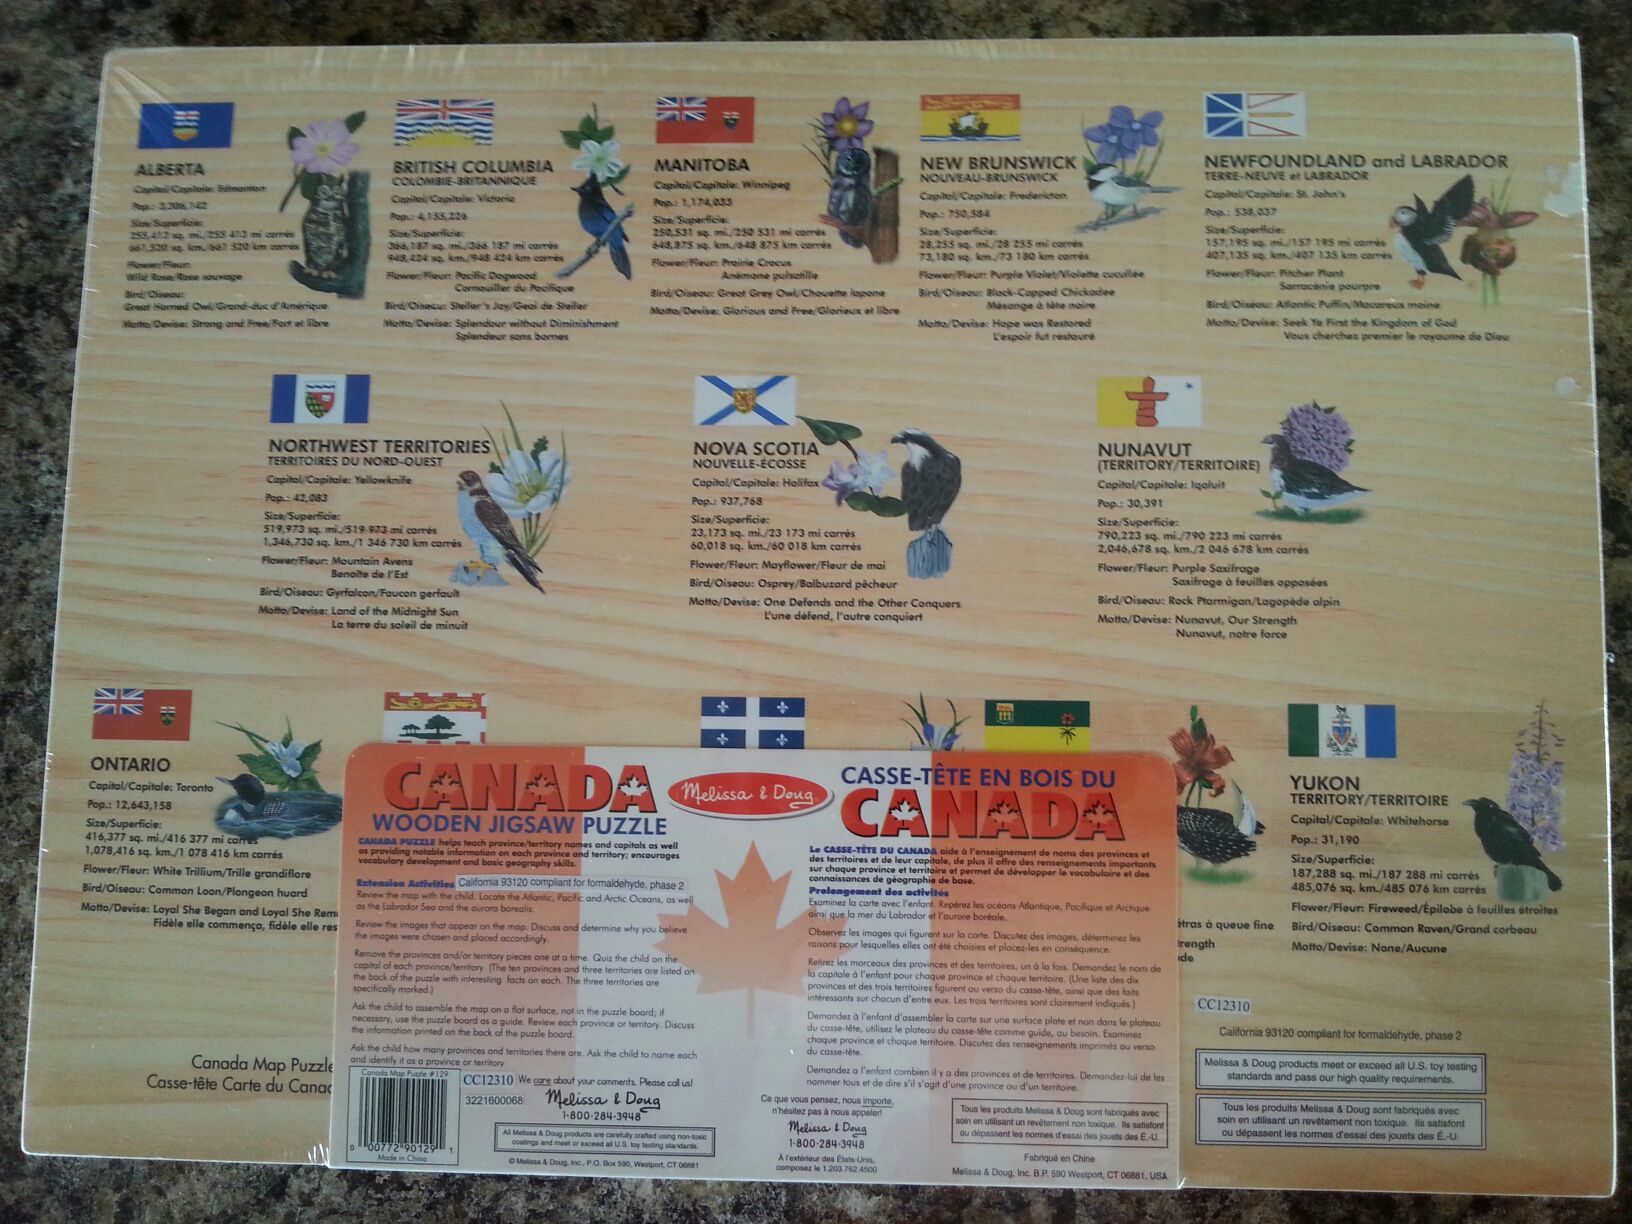 Puzzle - Map of Canada Board Game back image (back cover, second image)